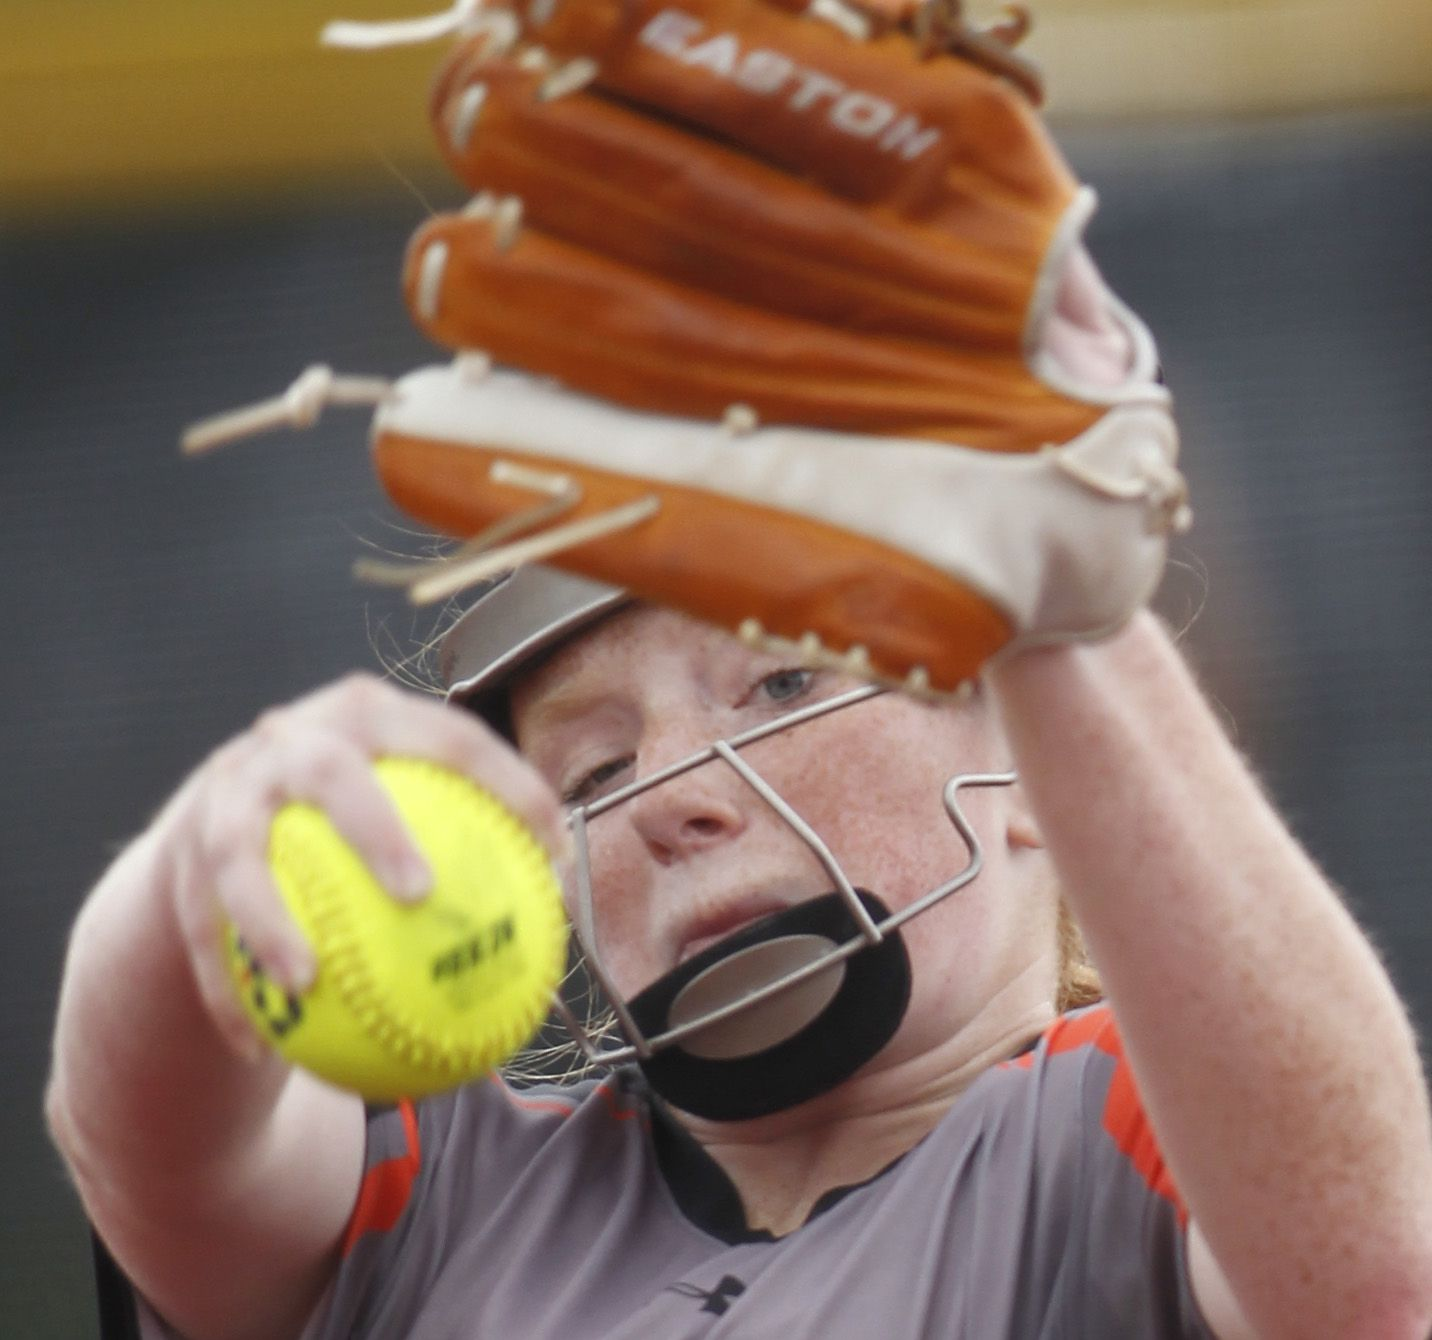 Rockwall pitcher Ainsley Pemberton (9) delivers a pitch to a Converse Judson batter during the bottom of the first inning of play. The two teams played their UIL 6A state softball semifinal game at Leander Glenn High School in Leander on June 4, 2021. (Steve Hamm/ Special Contributor)